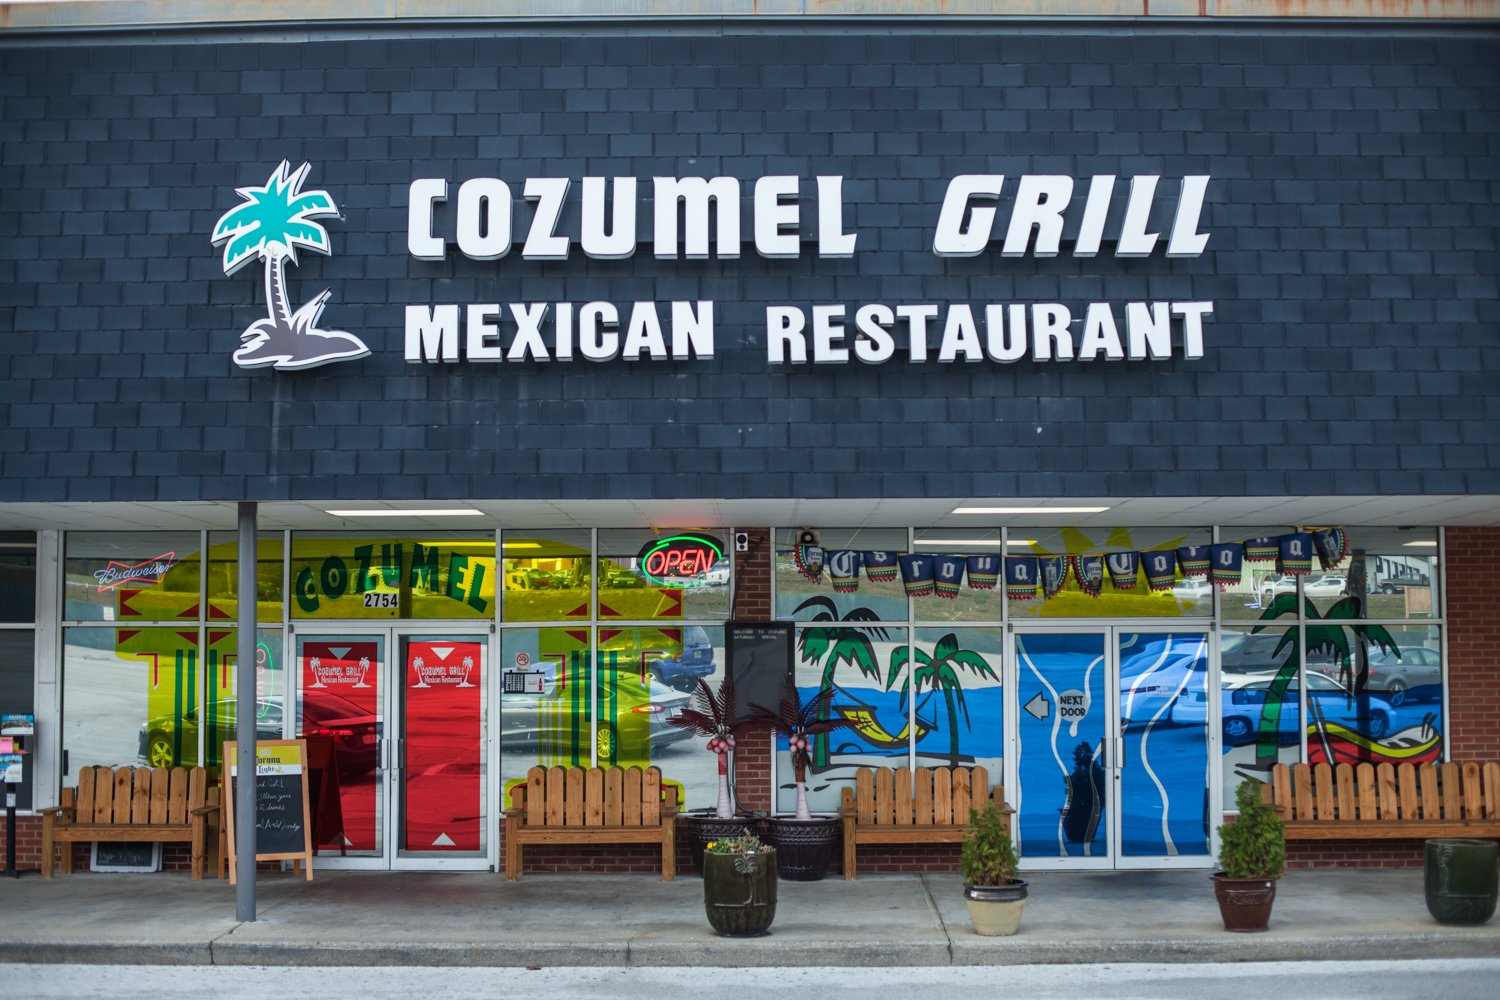 Cozumel Grill Mexican Restaurant exterior storefront